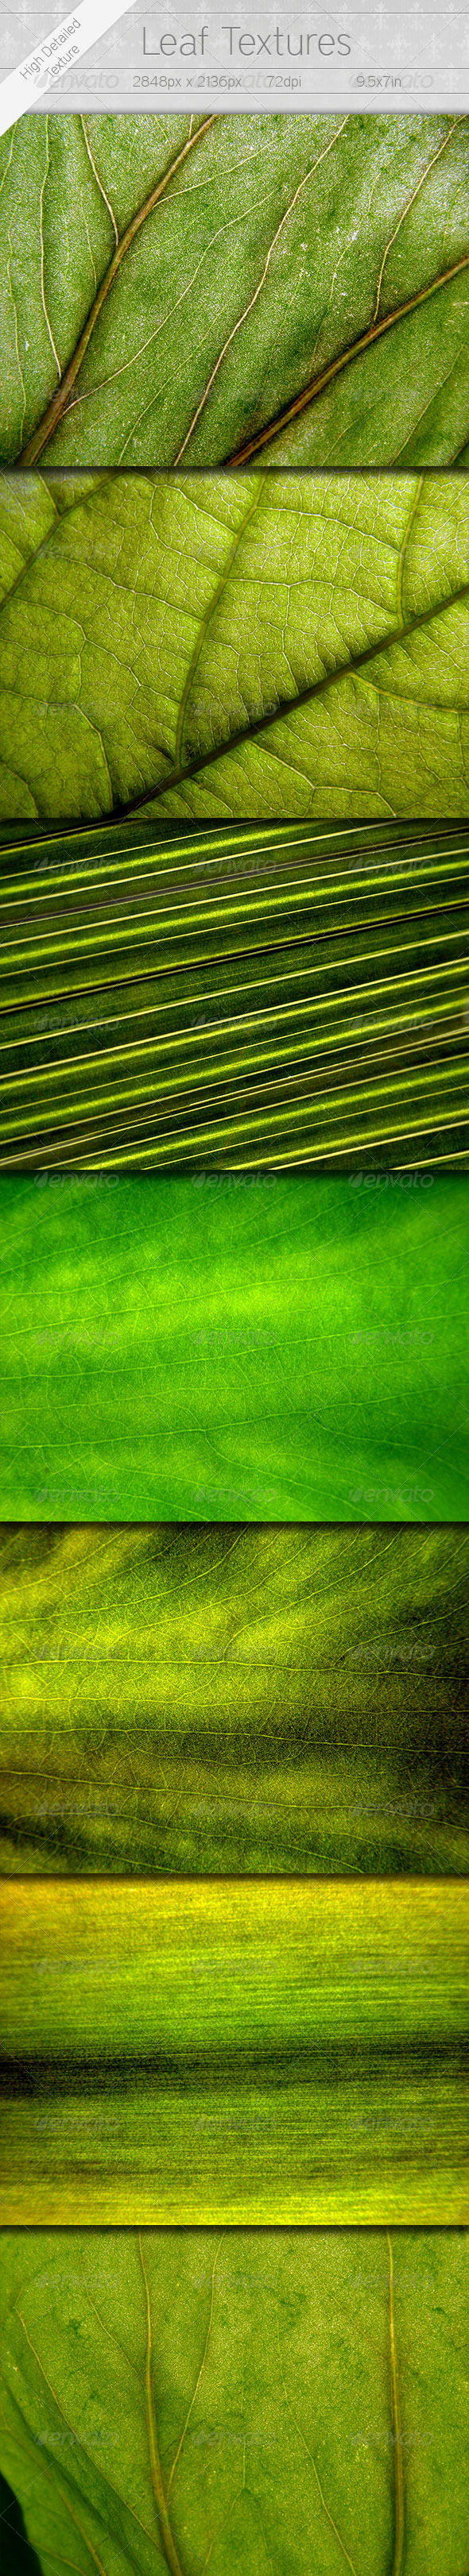 7 Leaf Textures - Nature Textures